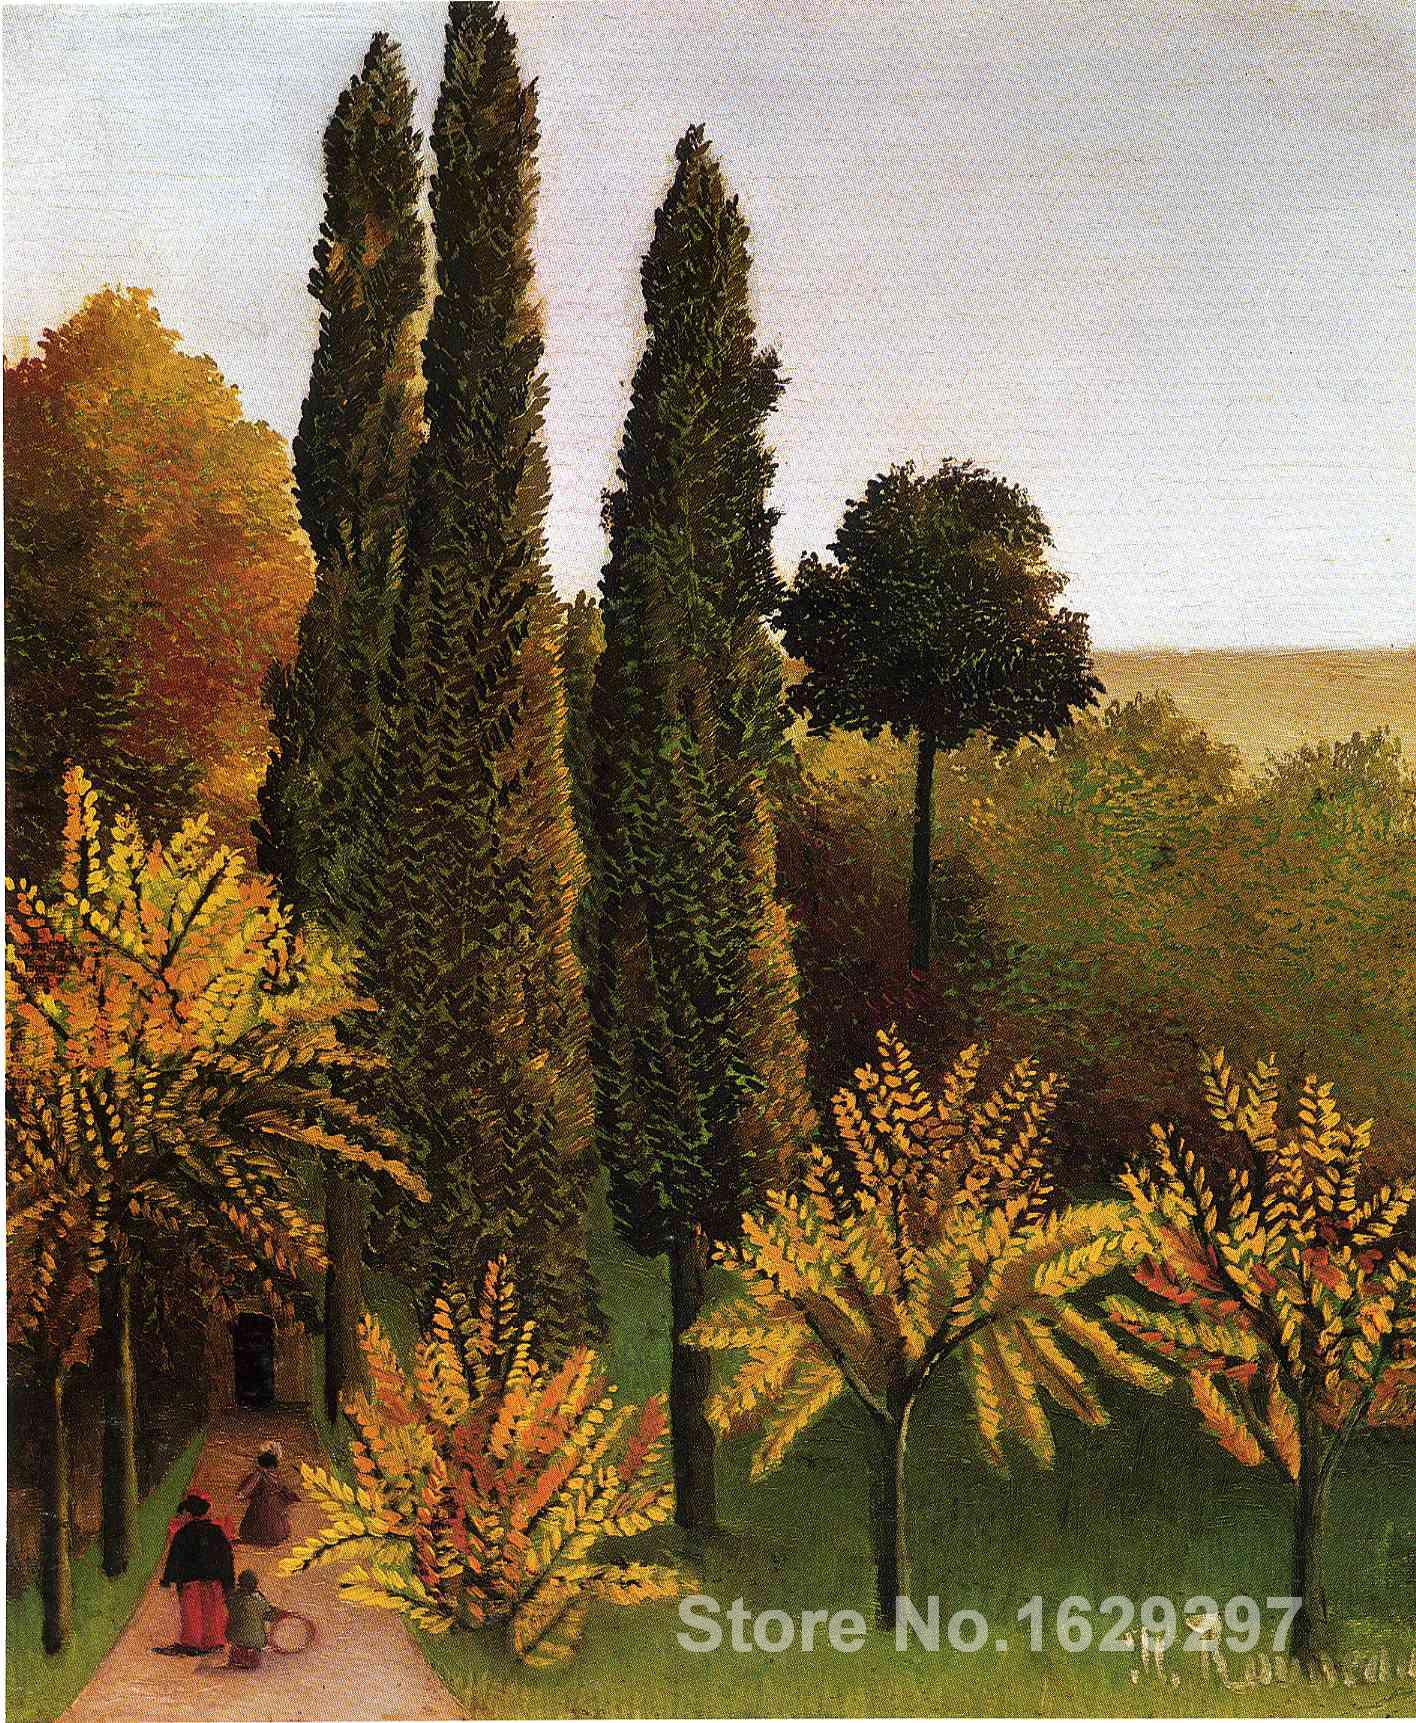 Walking in the Parc des Buttes Chaumont by Henri Rousseau Canvas art Painting High quality Hand painted